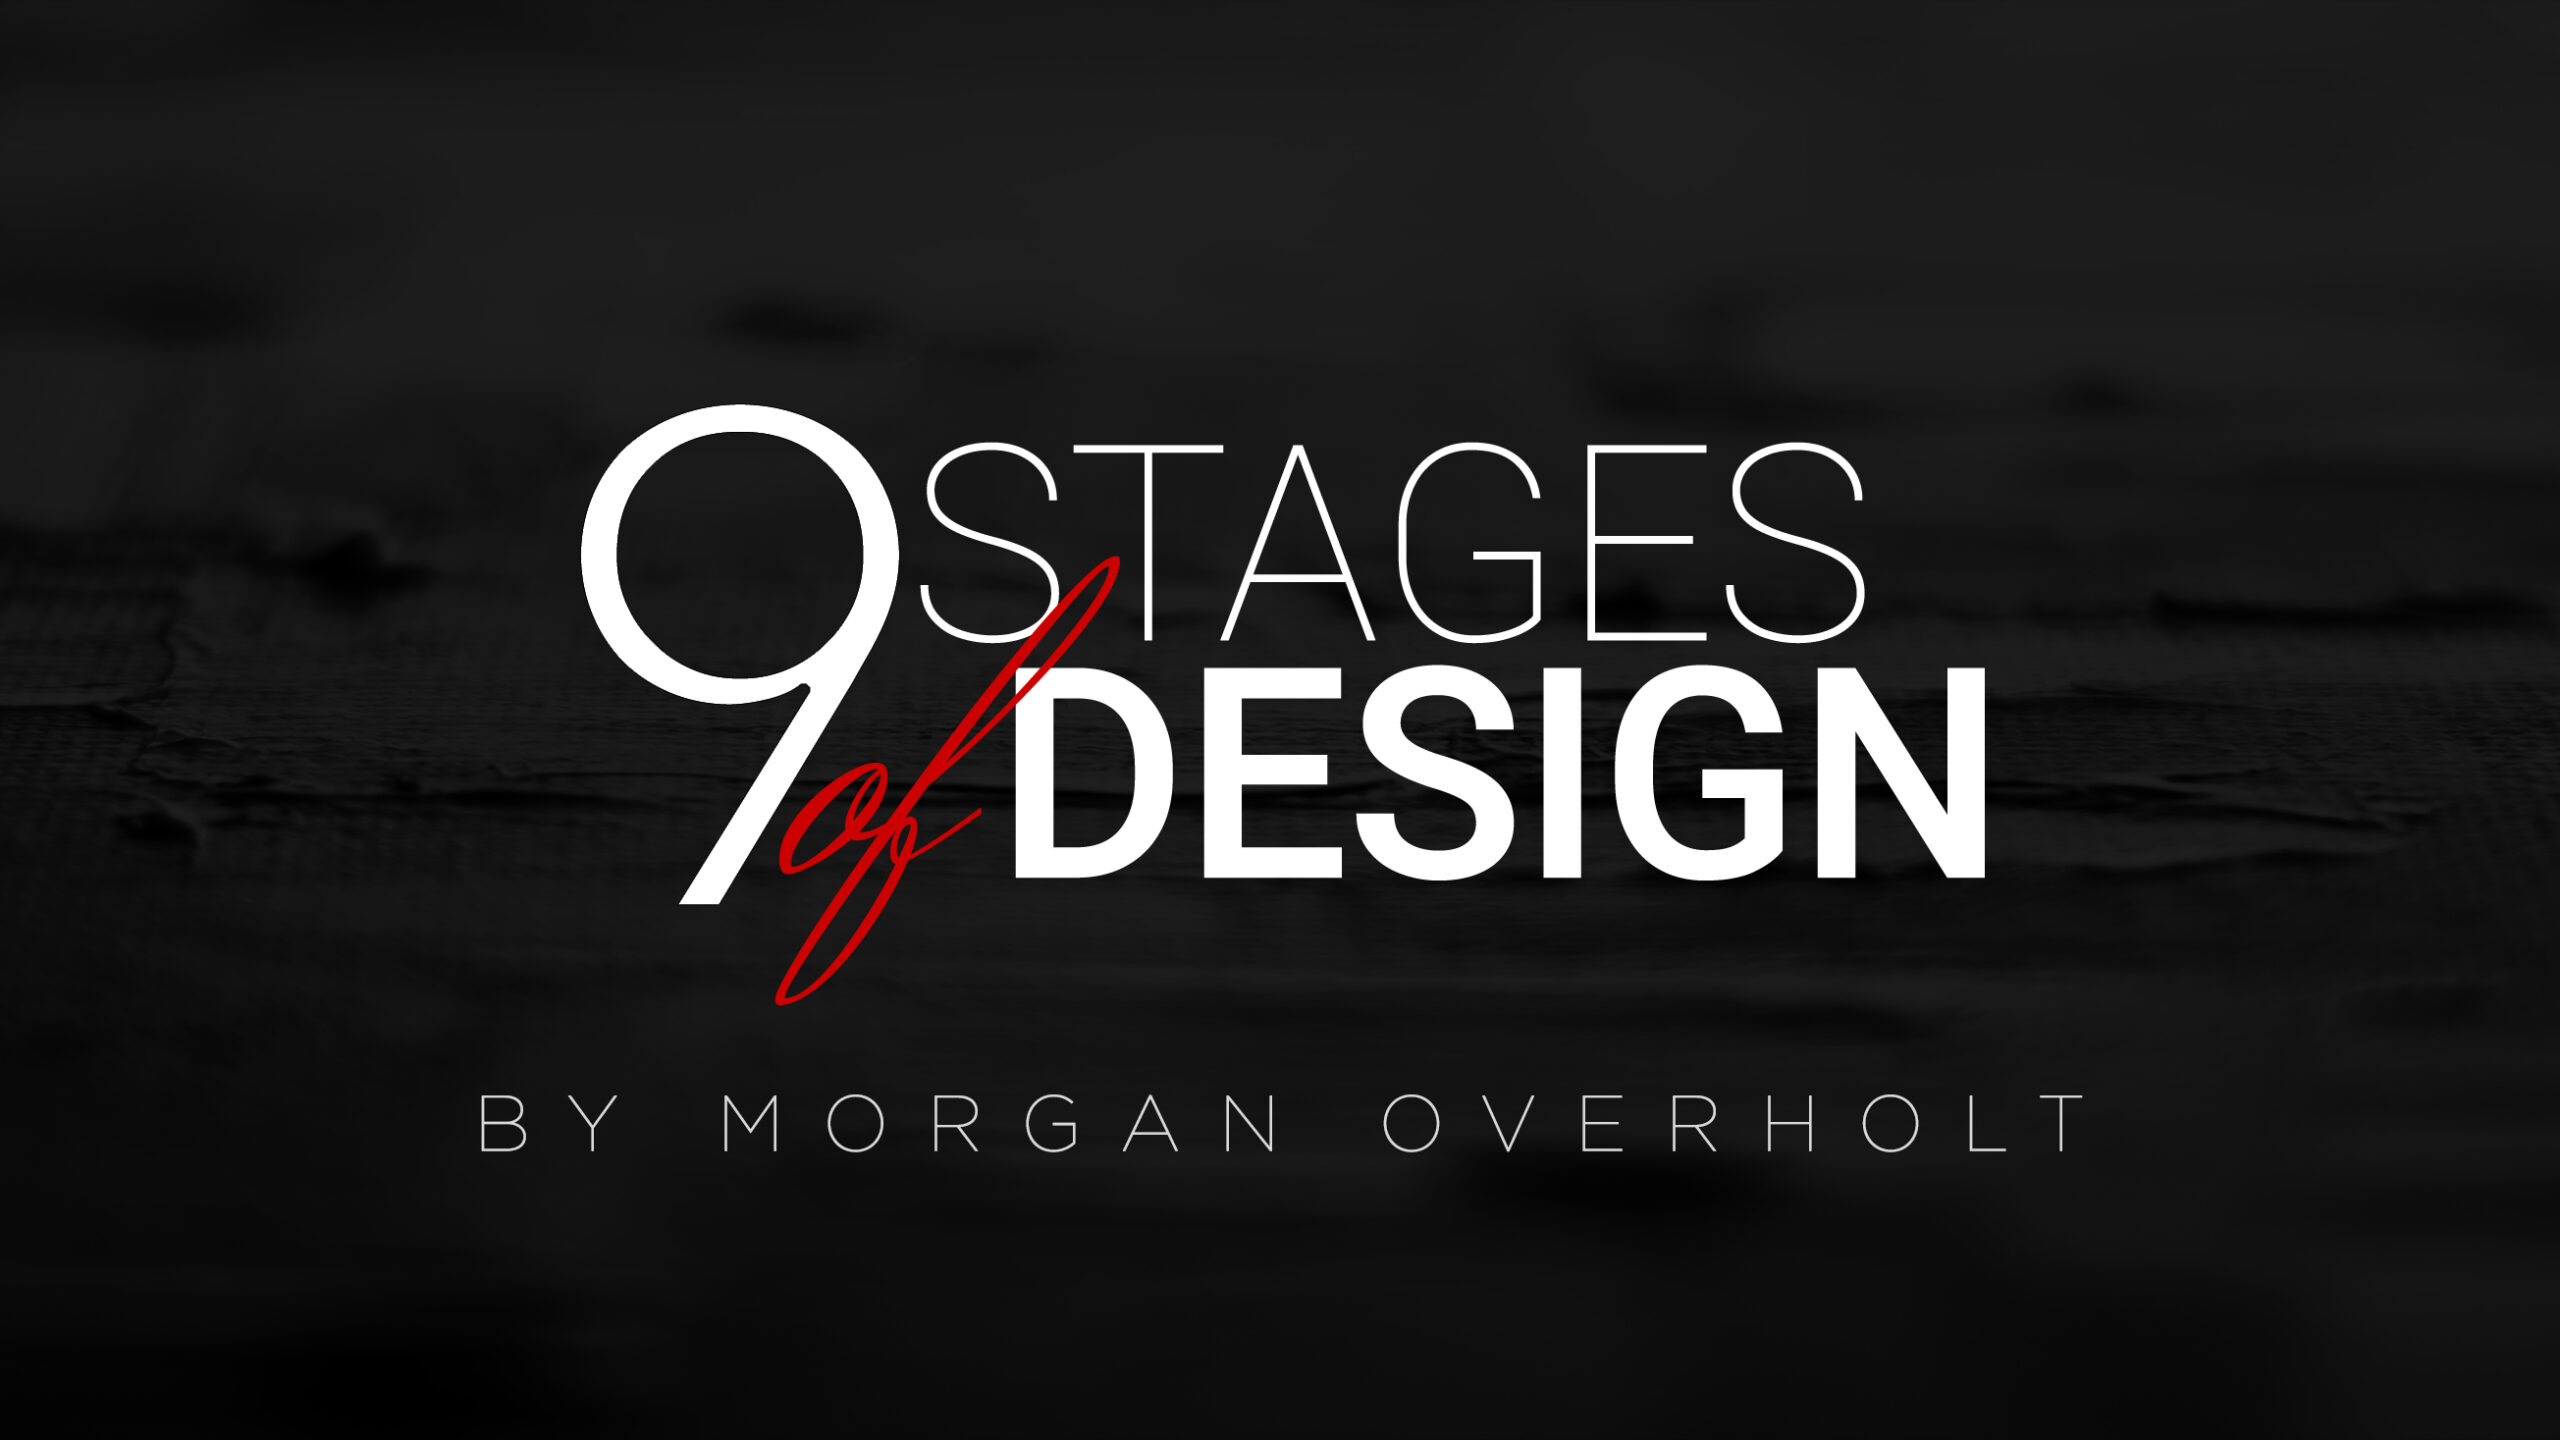 Thinking Outside the Box, 9 Lives of the Non-Profit, 9 Stages of Design, 9 Stages of Grief